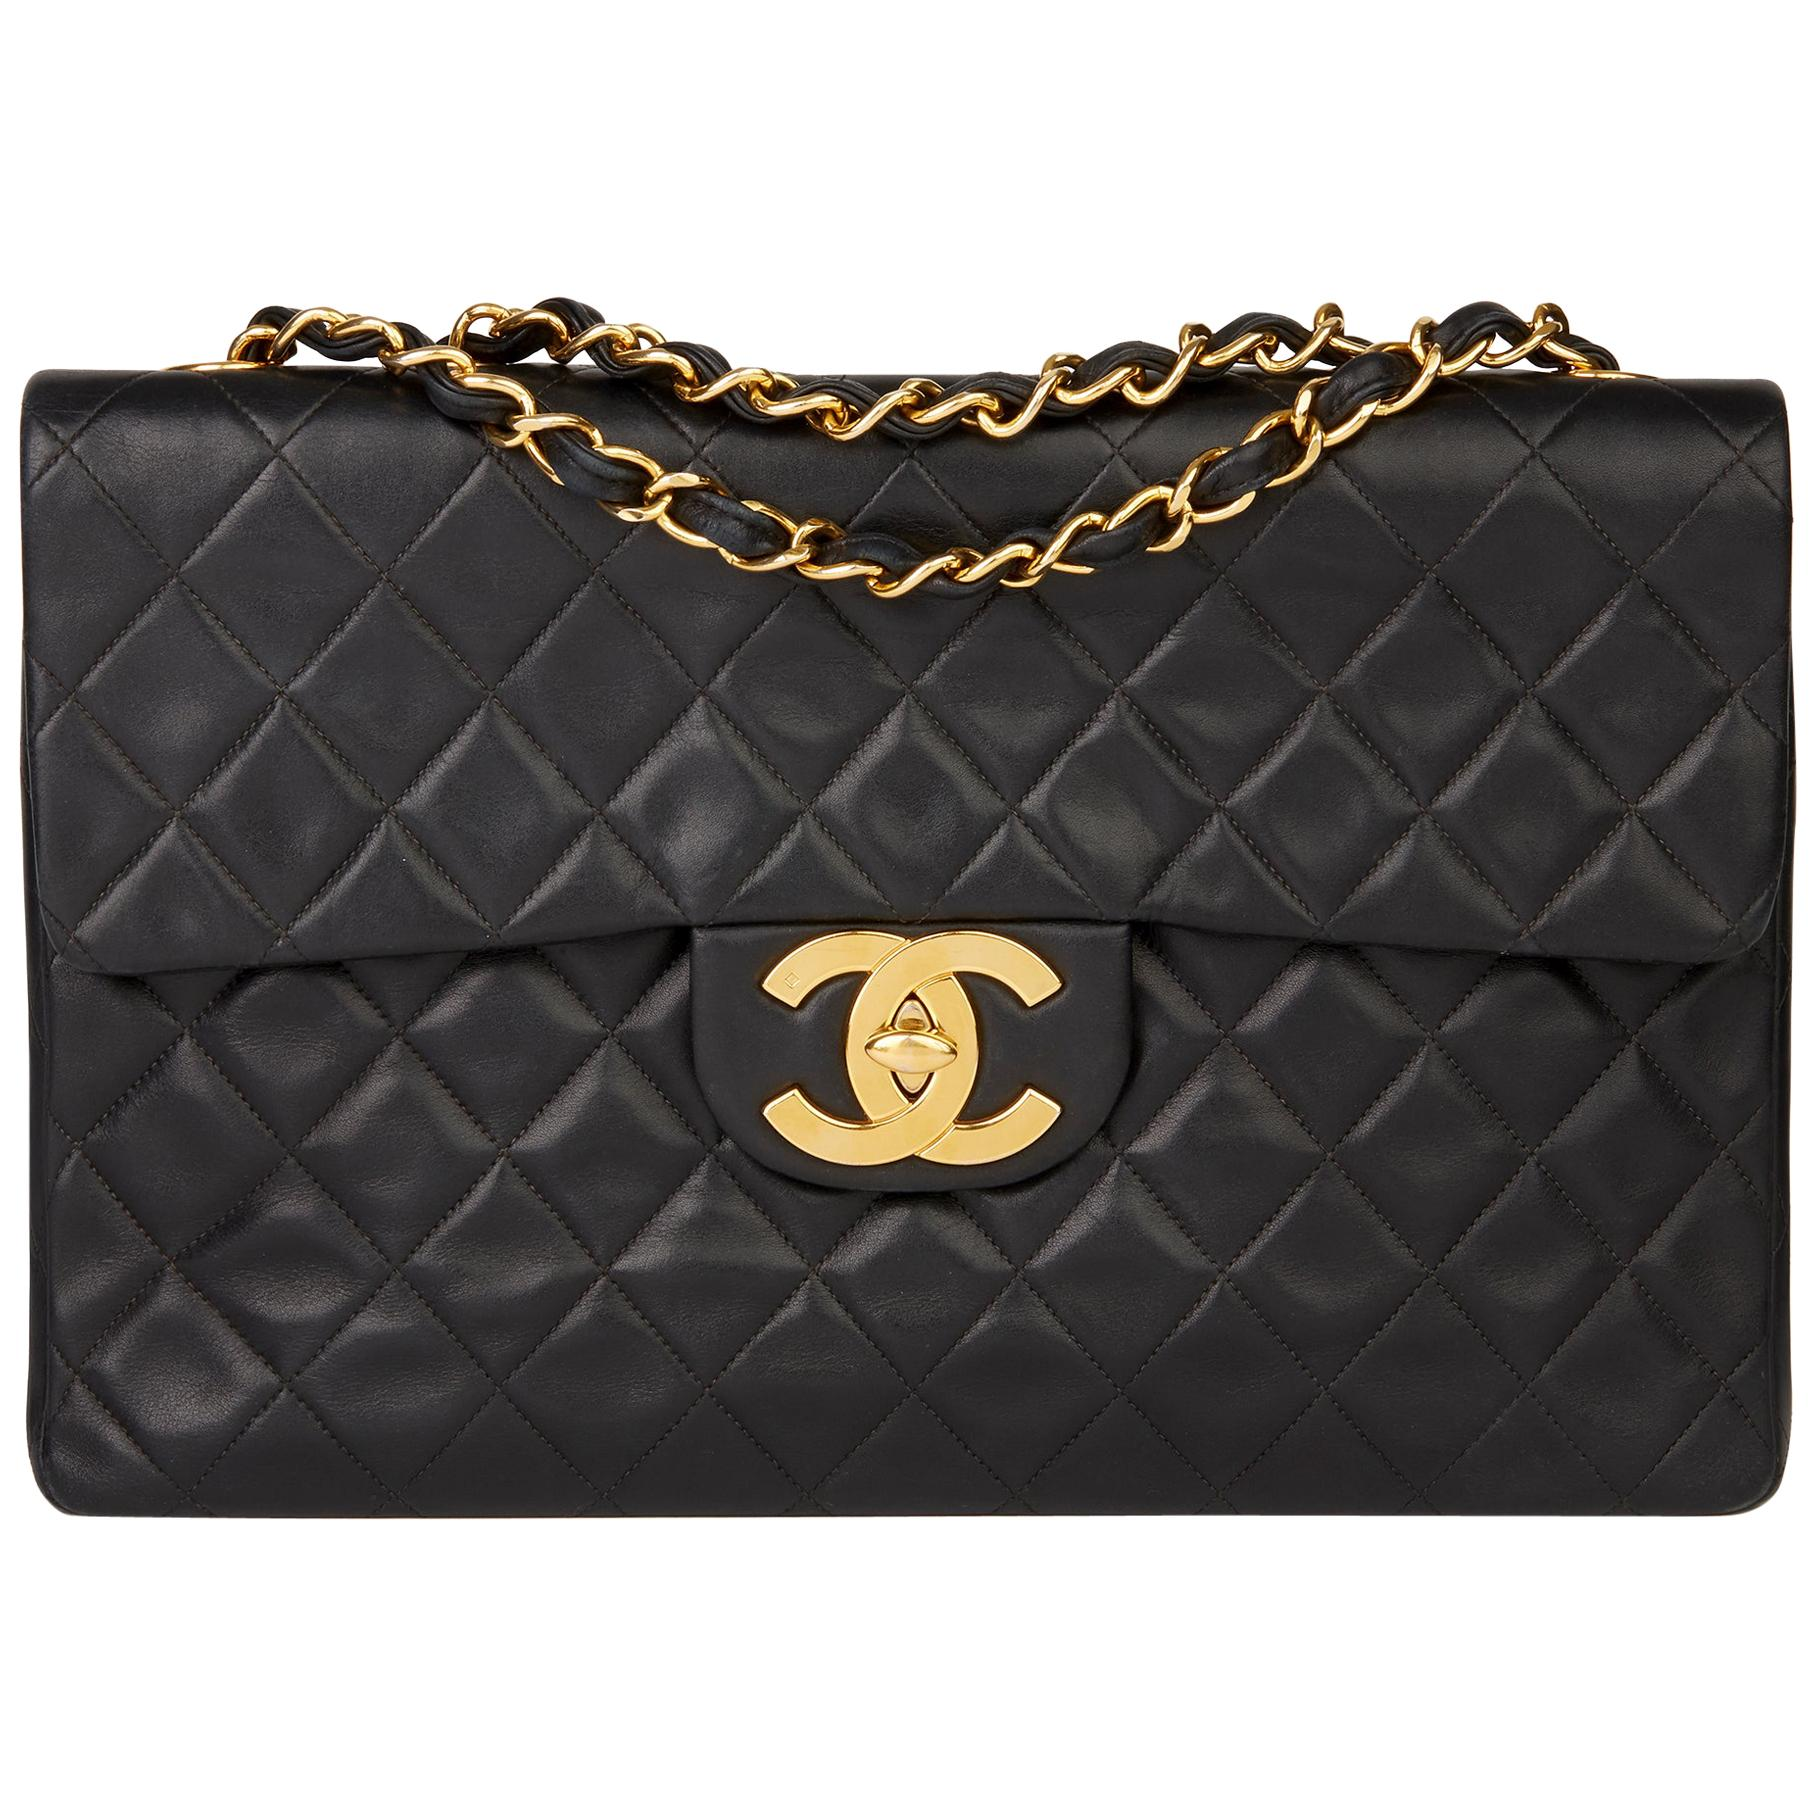 5533acd4991 Chanel Jumbo Flap Bags - 180 For Sale on 1stdibs